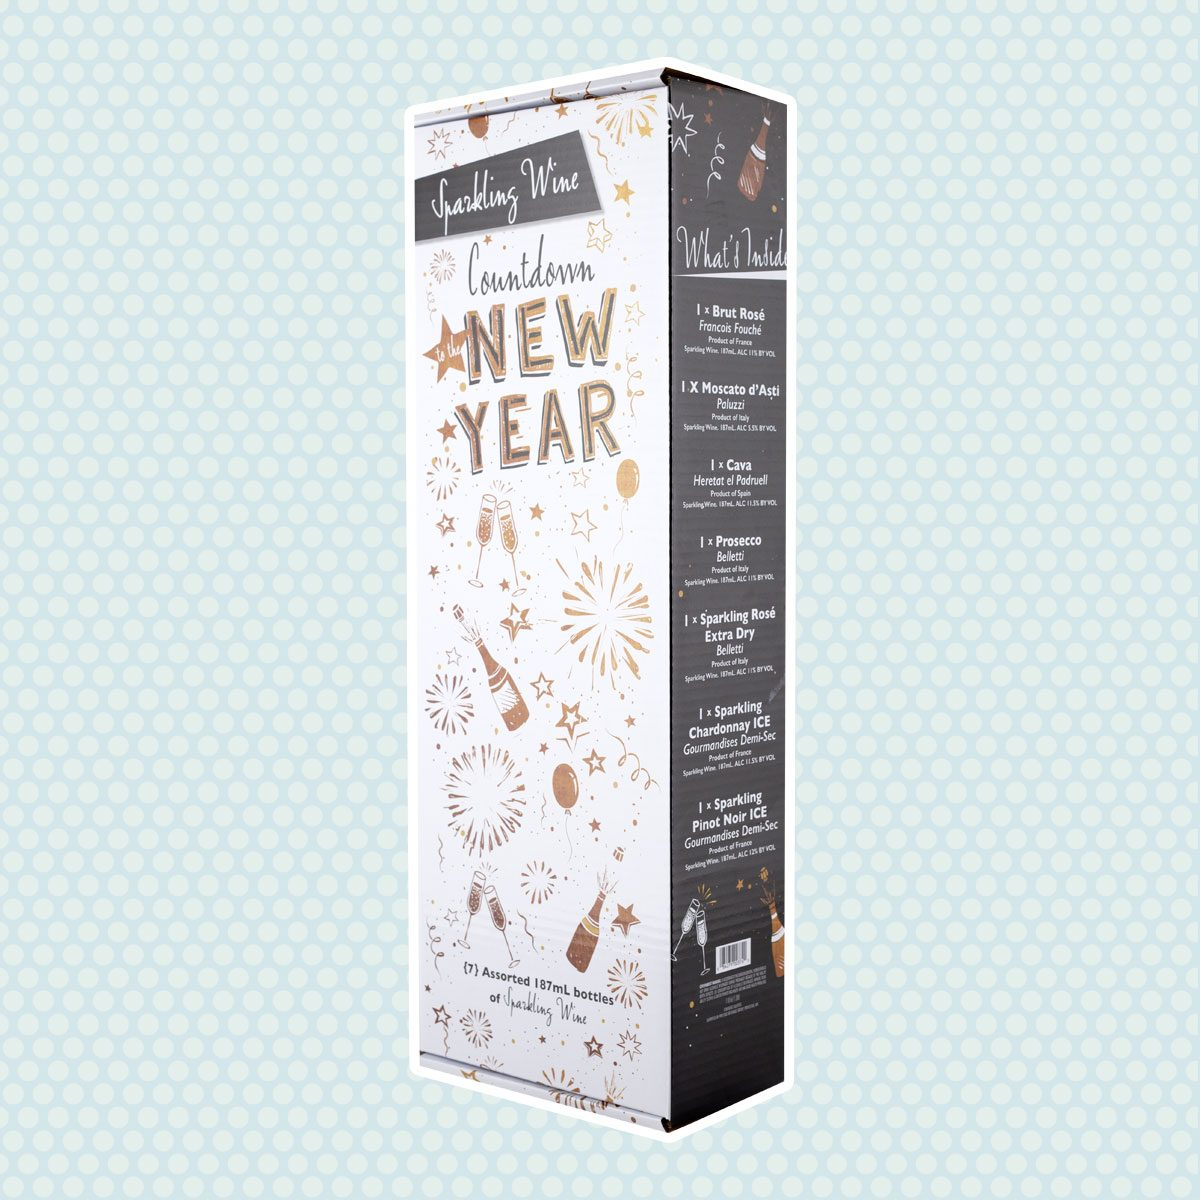 Sparkling Wine Countdown to the New Year